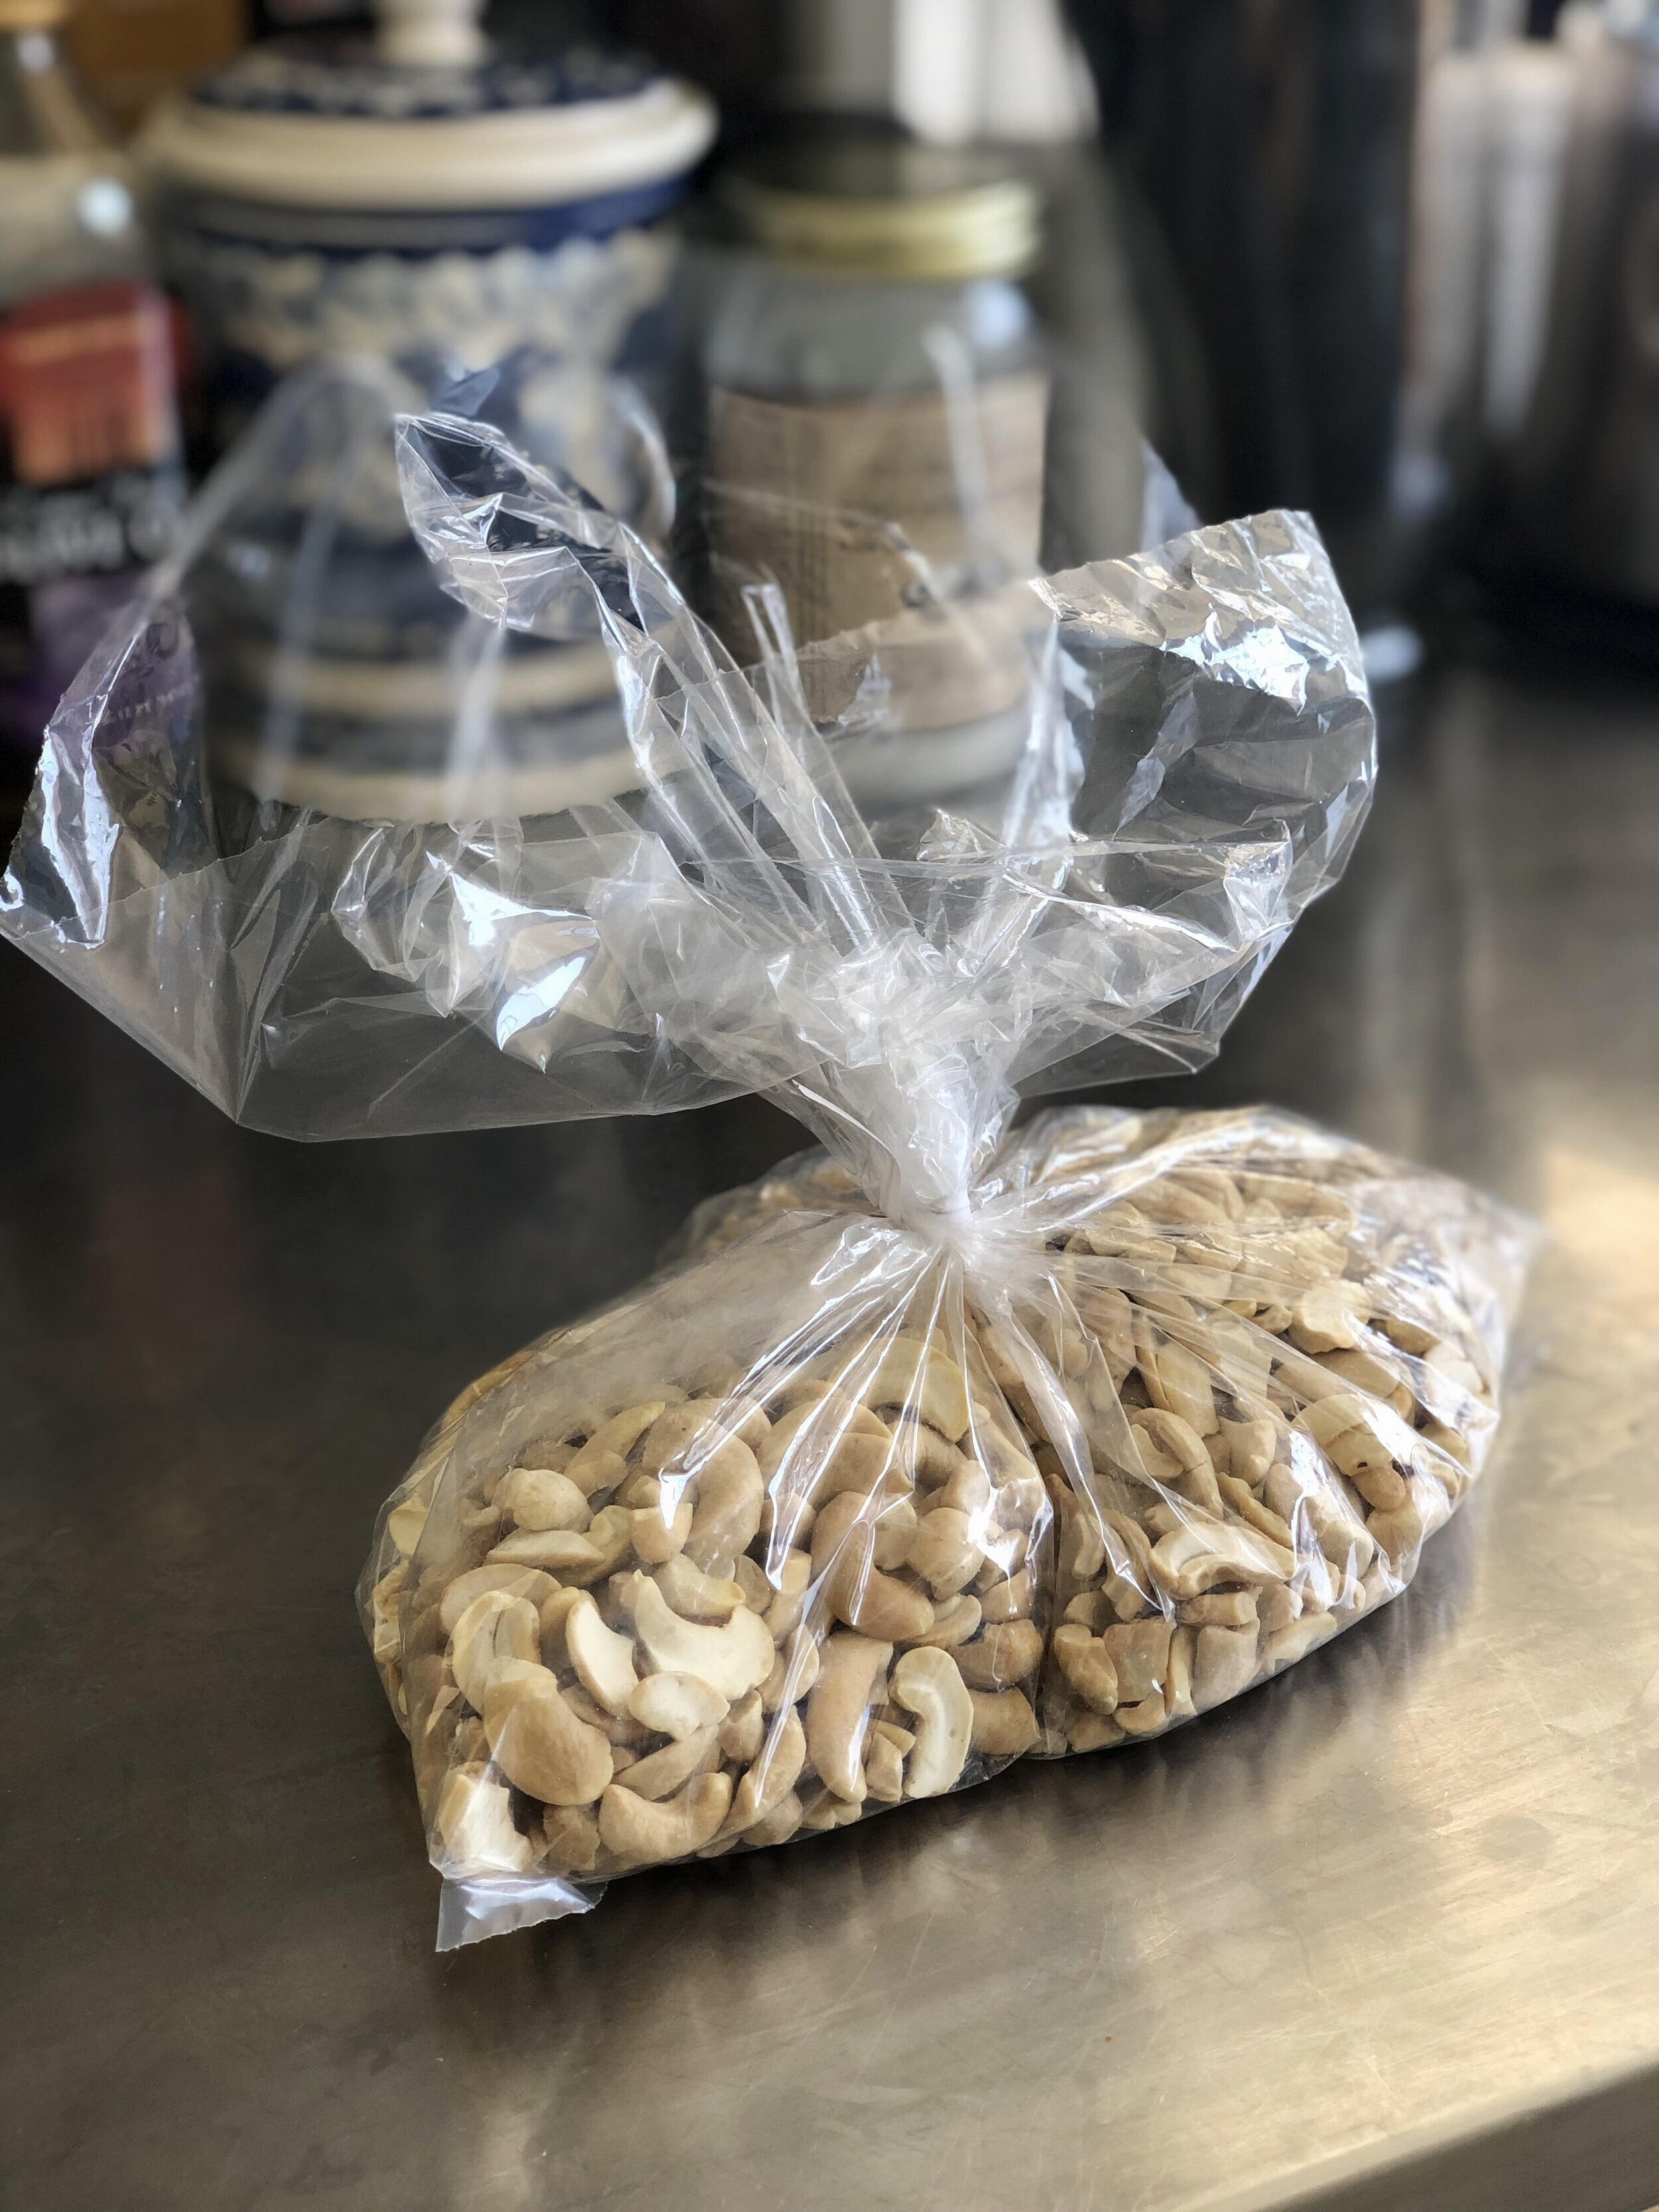 Grab the cashews from our bulk section! This is one of my favorite nuts because cashews are a powerhouse of nutrition! They contain iron, magnesium, potassium, zinc and the good kind of fats :) oh, and protein!